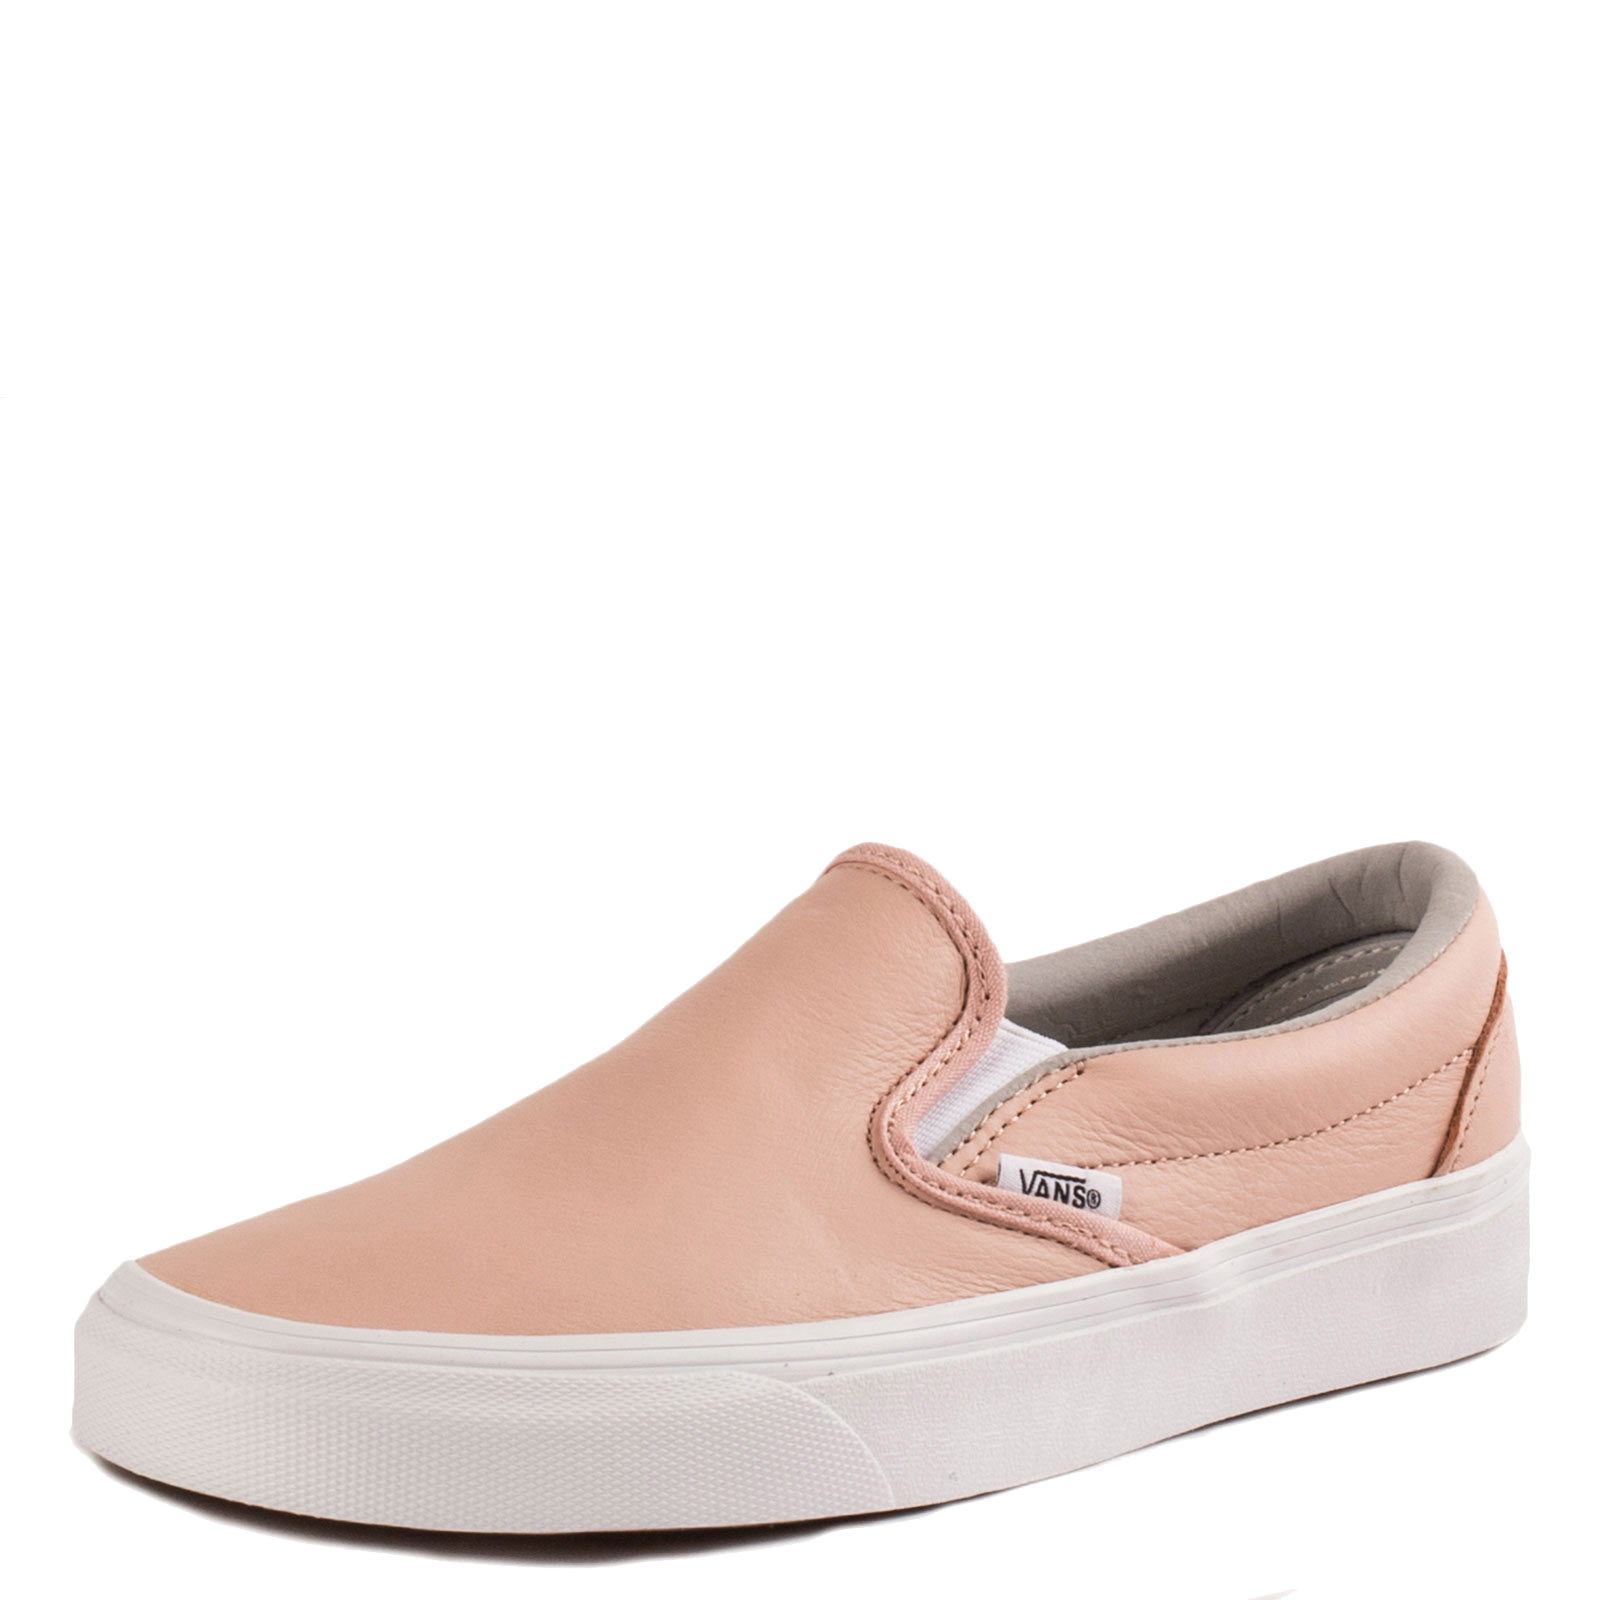 Фото - Available from 10.11 VANS women Walking shoes VA38F7QD6 women high heel shoes platform pumps woman thin high heels party wedding shoes ladies kitten heels plus size 34 40 41 42 43